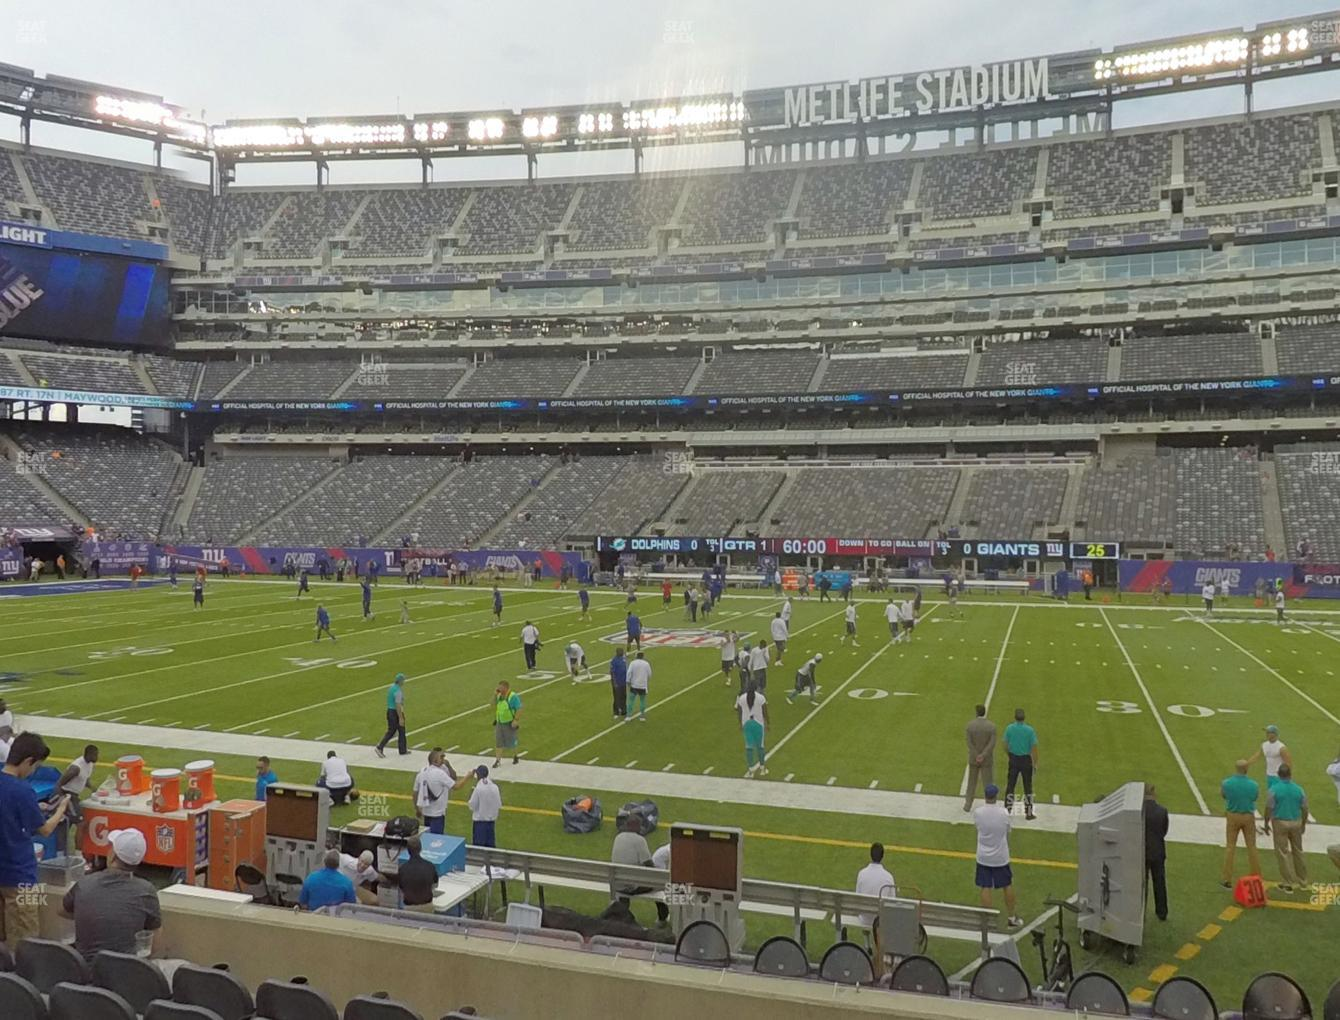 53a8dd67a59 View seating charts. New York Jets at MetLife Stadium Section 137 View ...